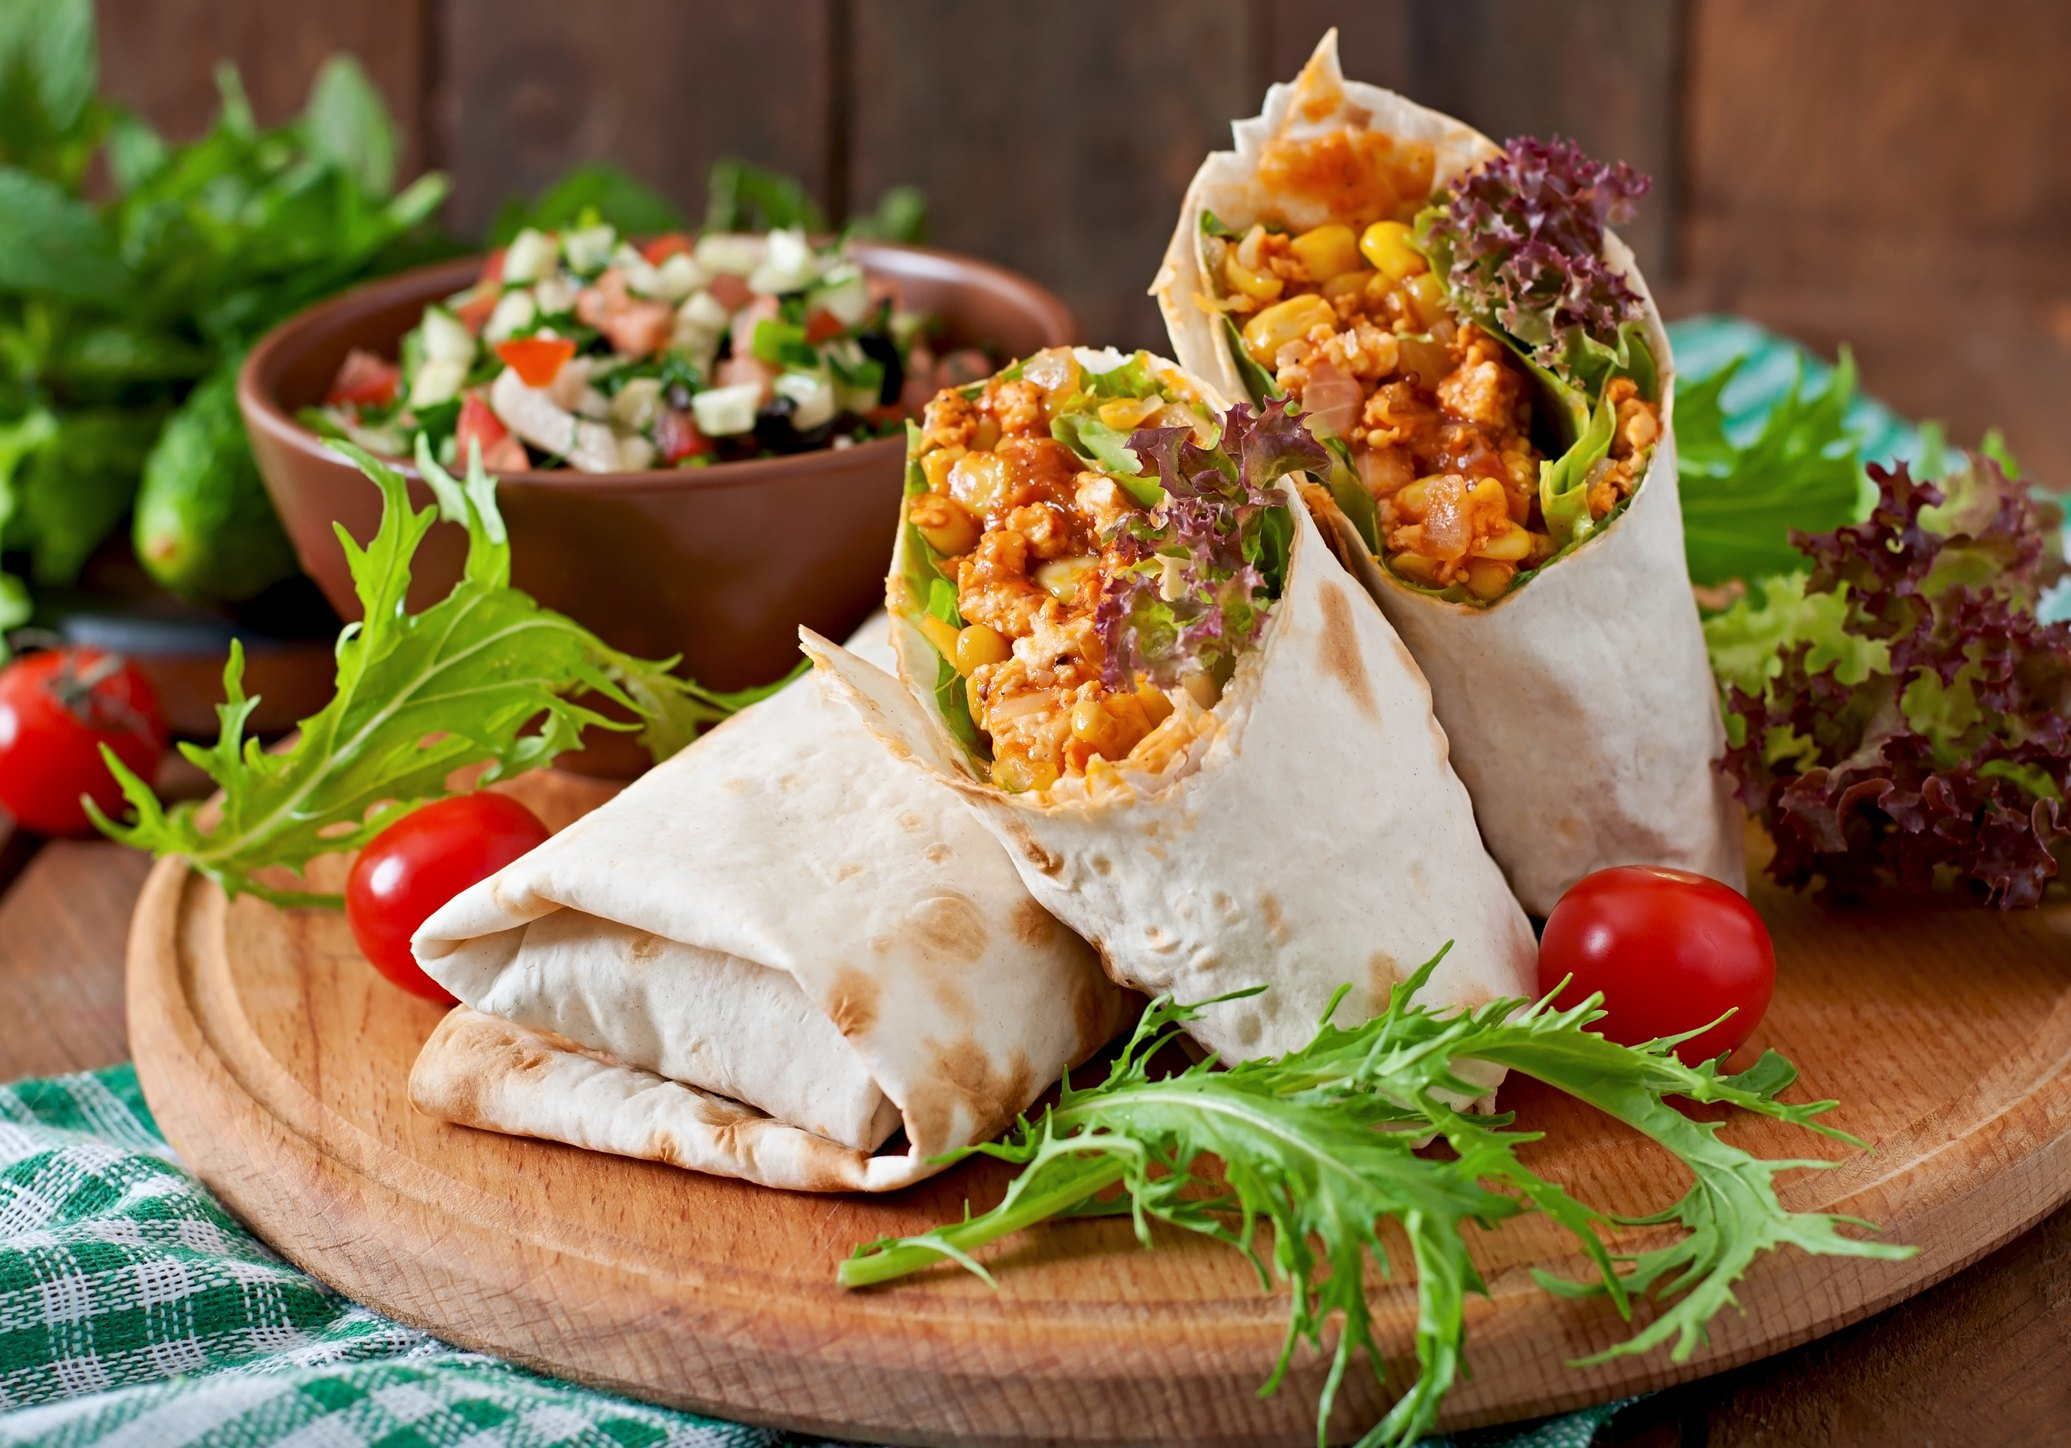 Burritos wraps